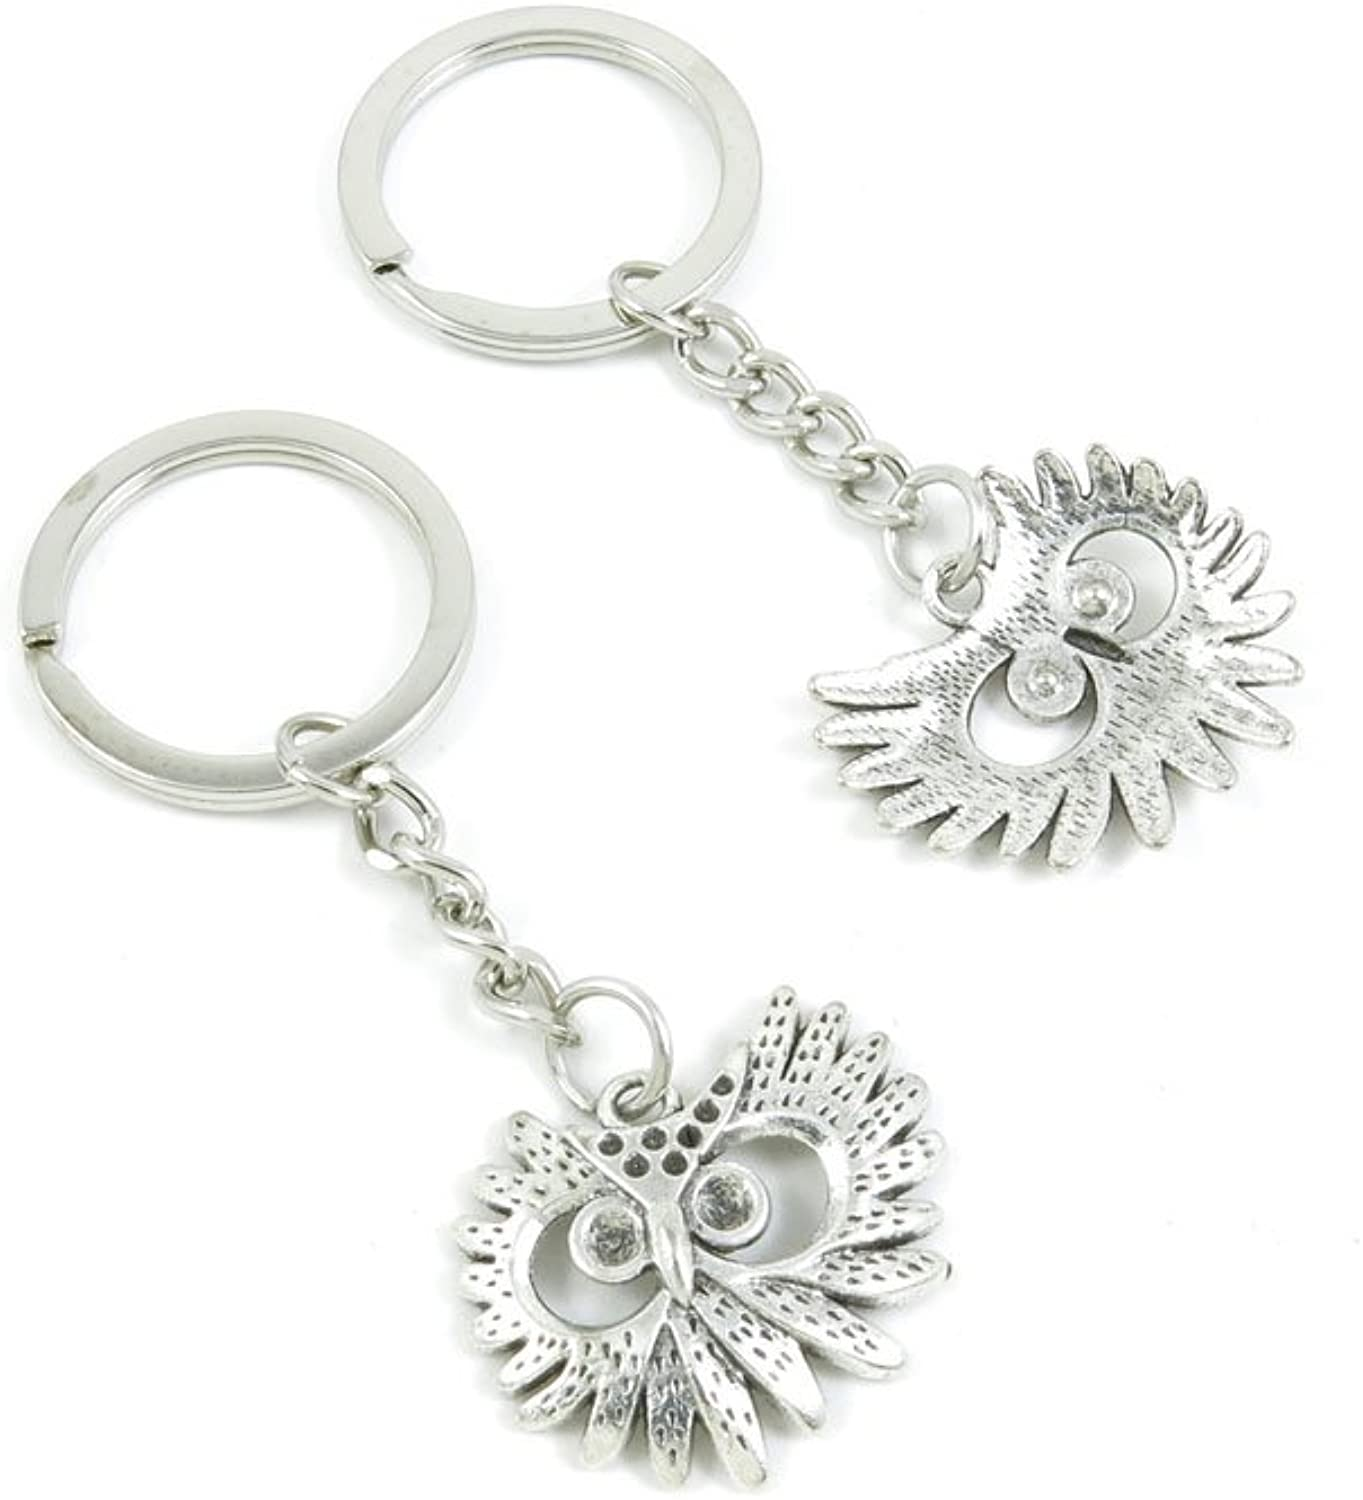 100 Pieces Keychain Keyring Door Car Key Chain Ring Tag Charms Bulk Supply Jewelry Making Clasp Findings B4NB5B Owl